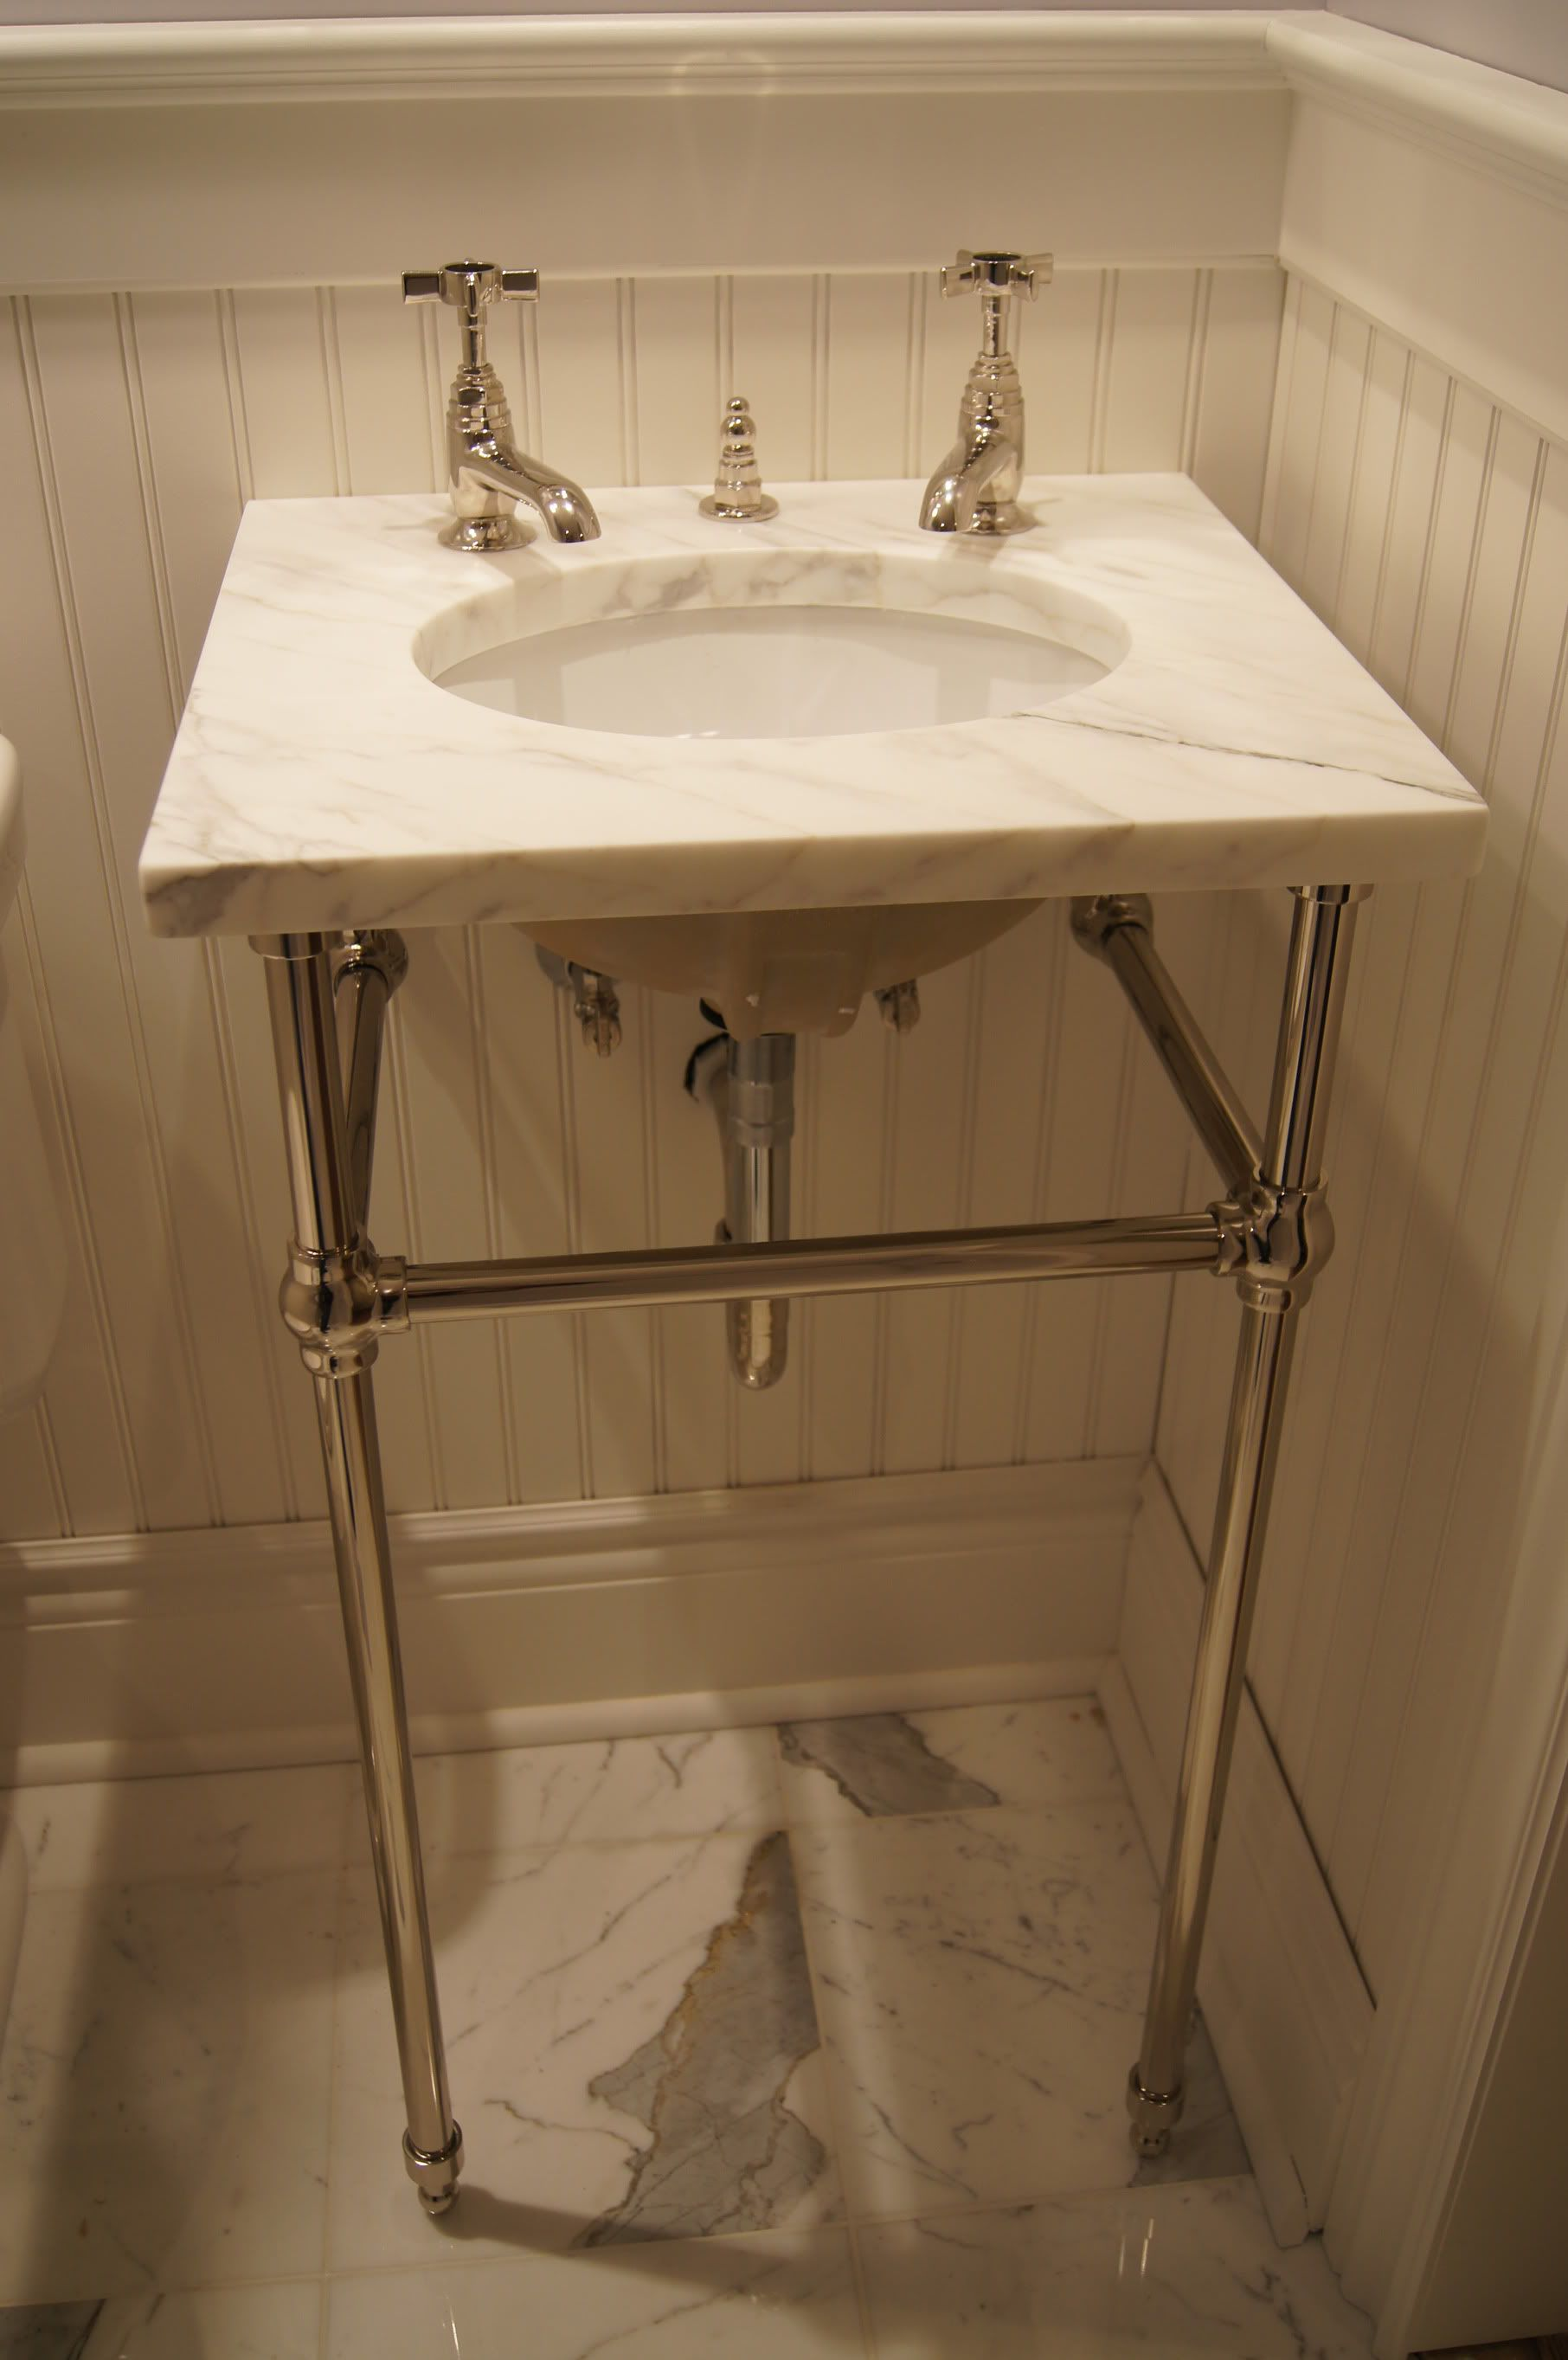 Undermount Sink With A Marble Top On Console Legs Remodeled Bathrooms Pinterest Undermount